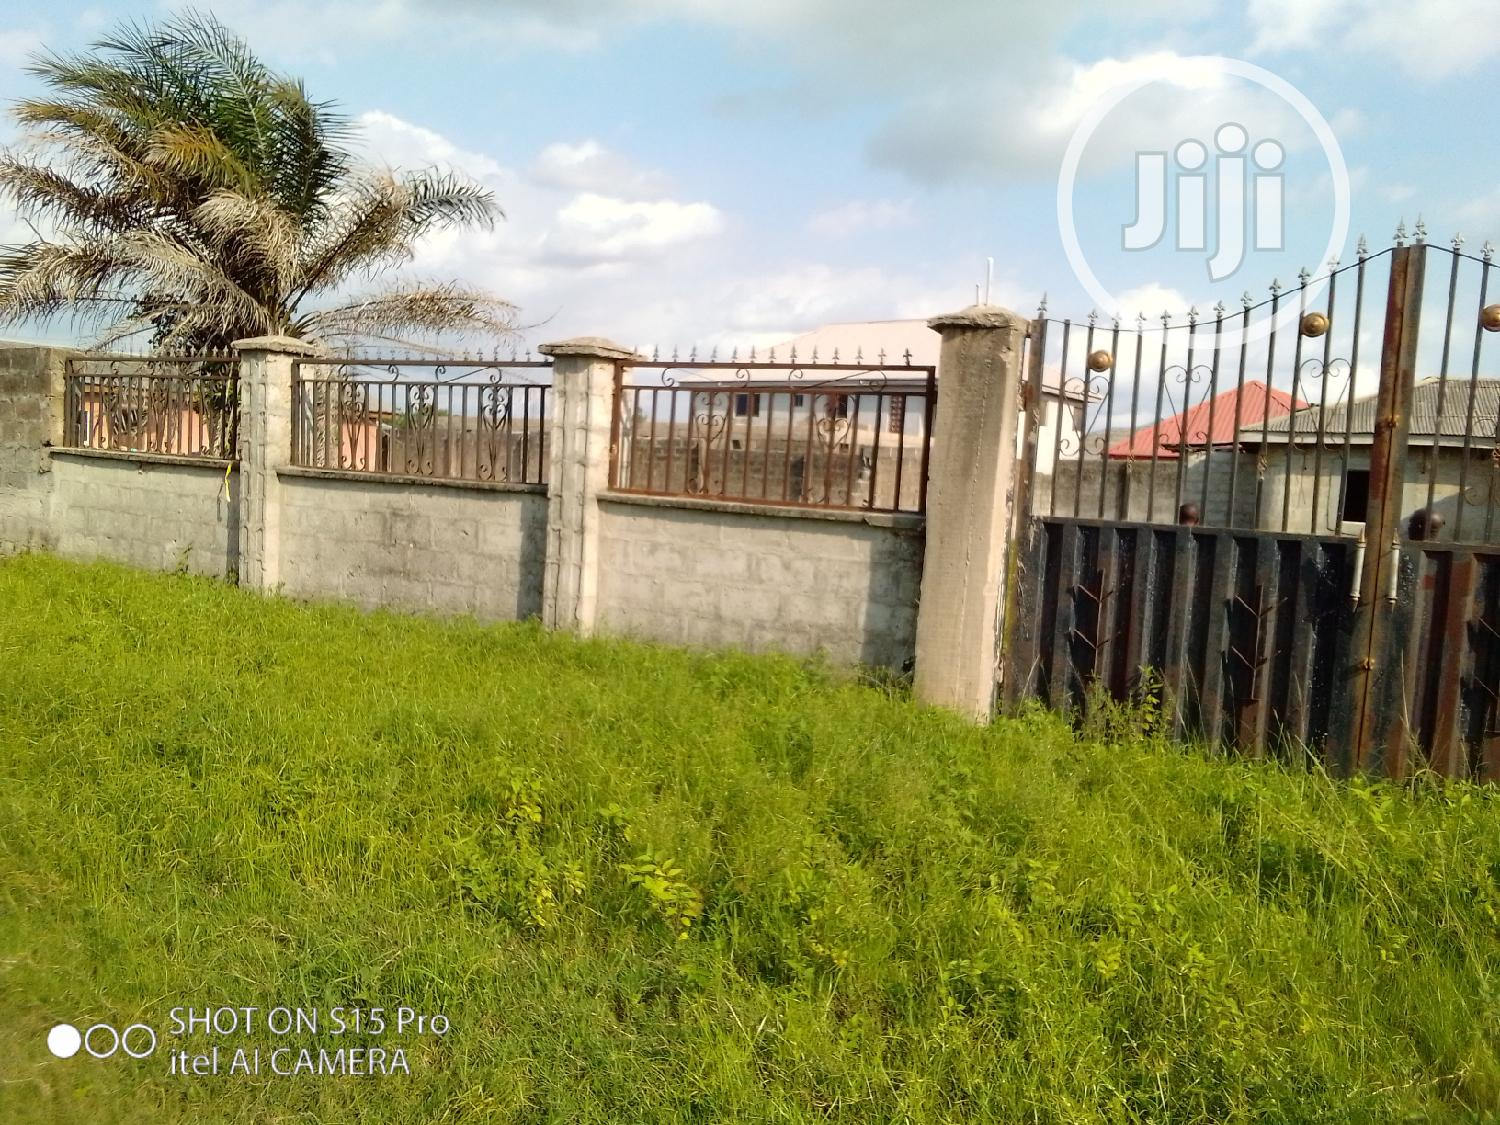 Land for Sale in Salvation Estate of Ojuore-Ota | Land & Plots For Sale for sale in Ado-Odo/Ota, Ogun State, Nigeria